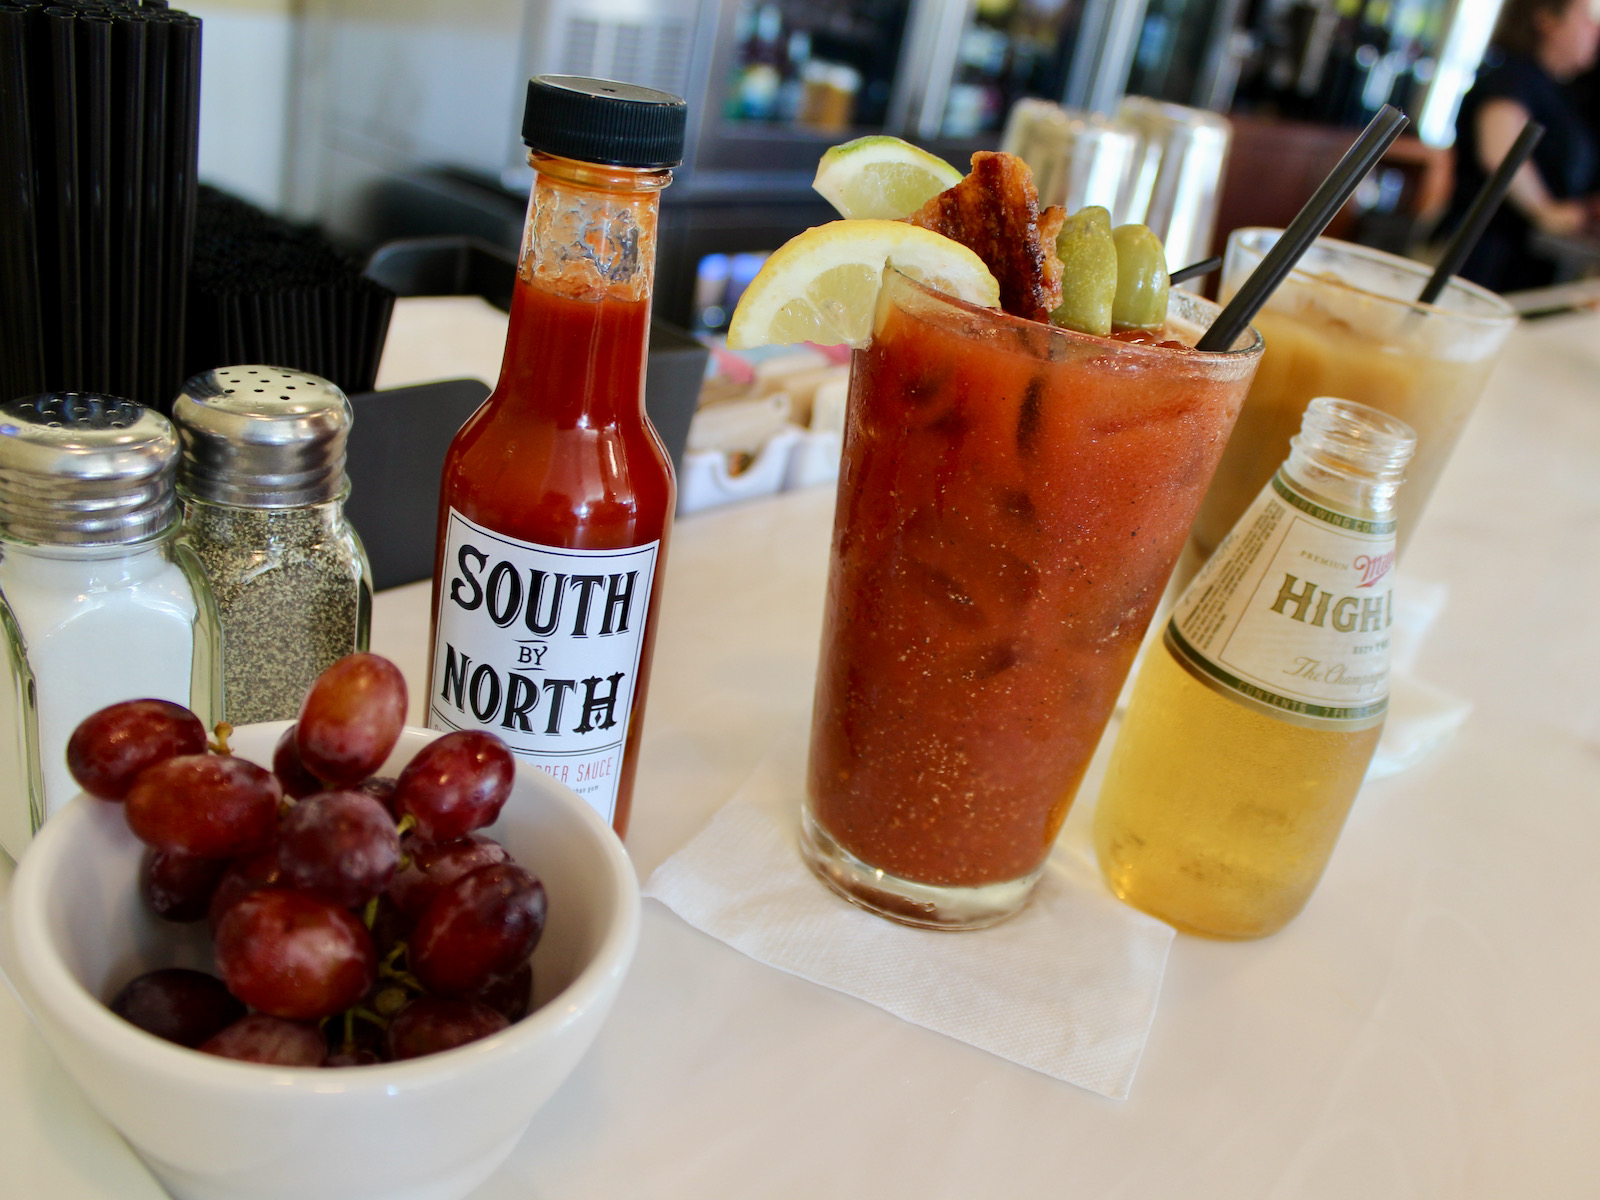 Bloody mary and chaser